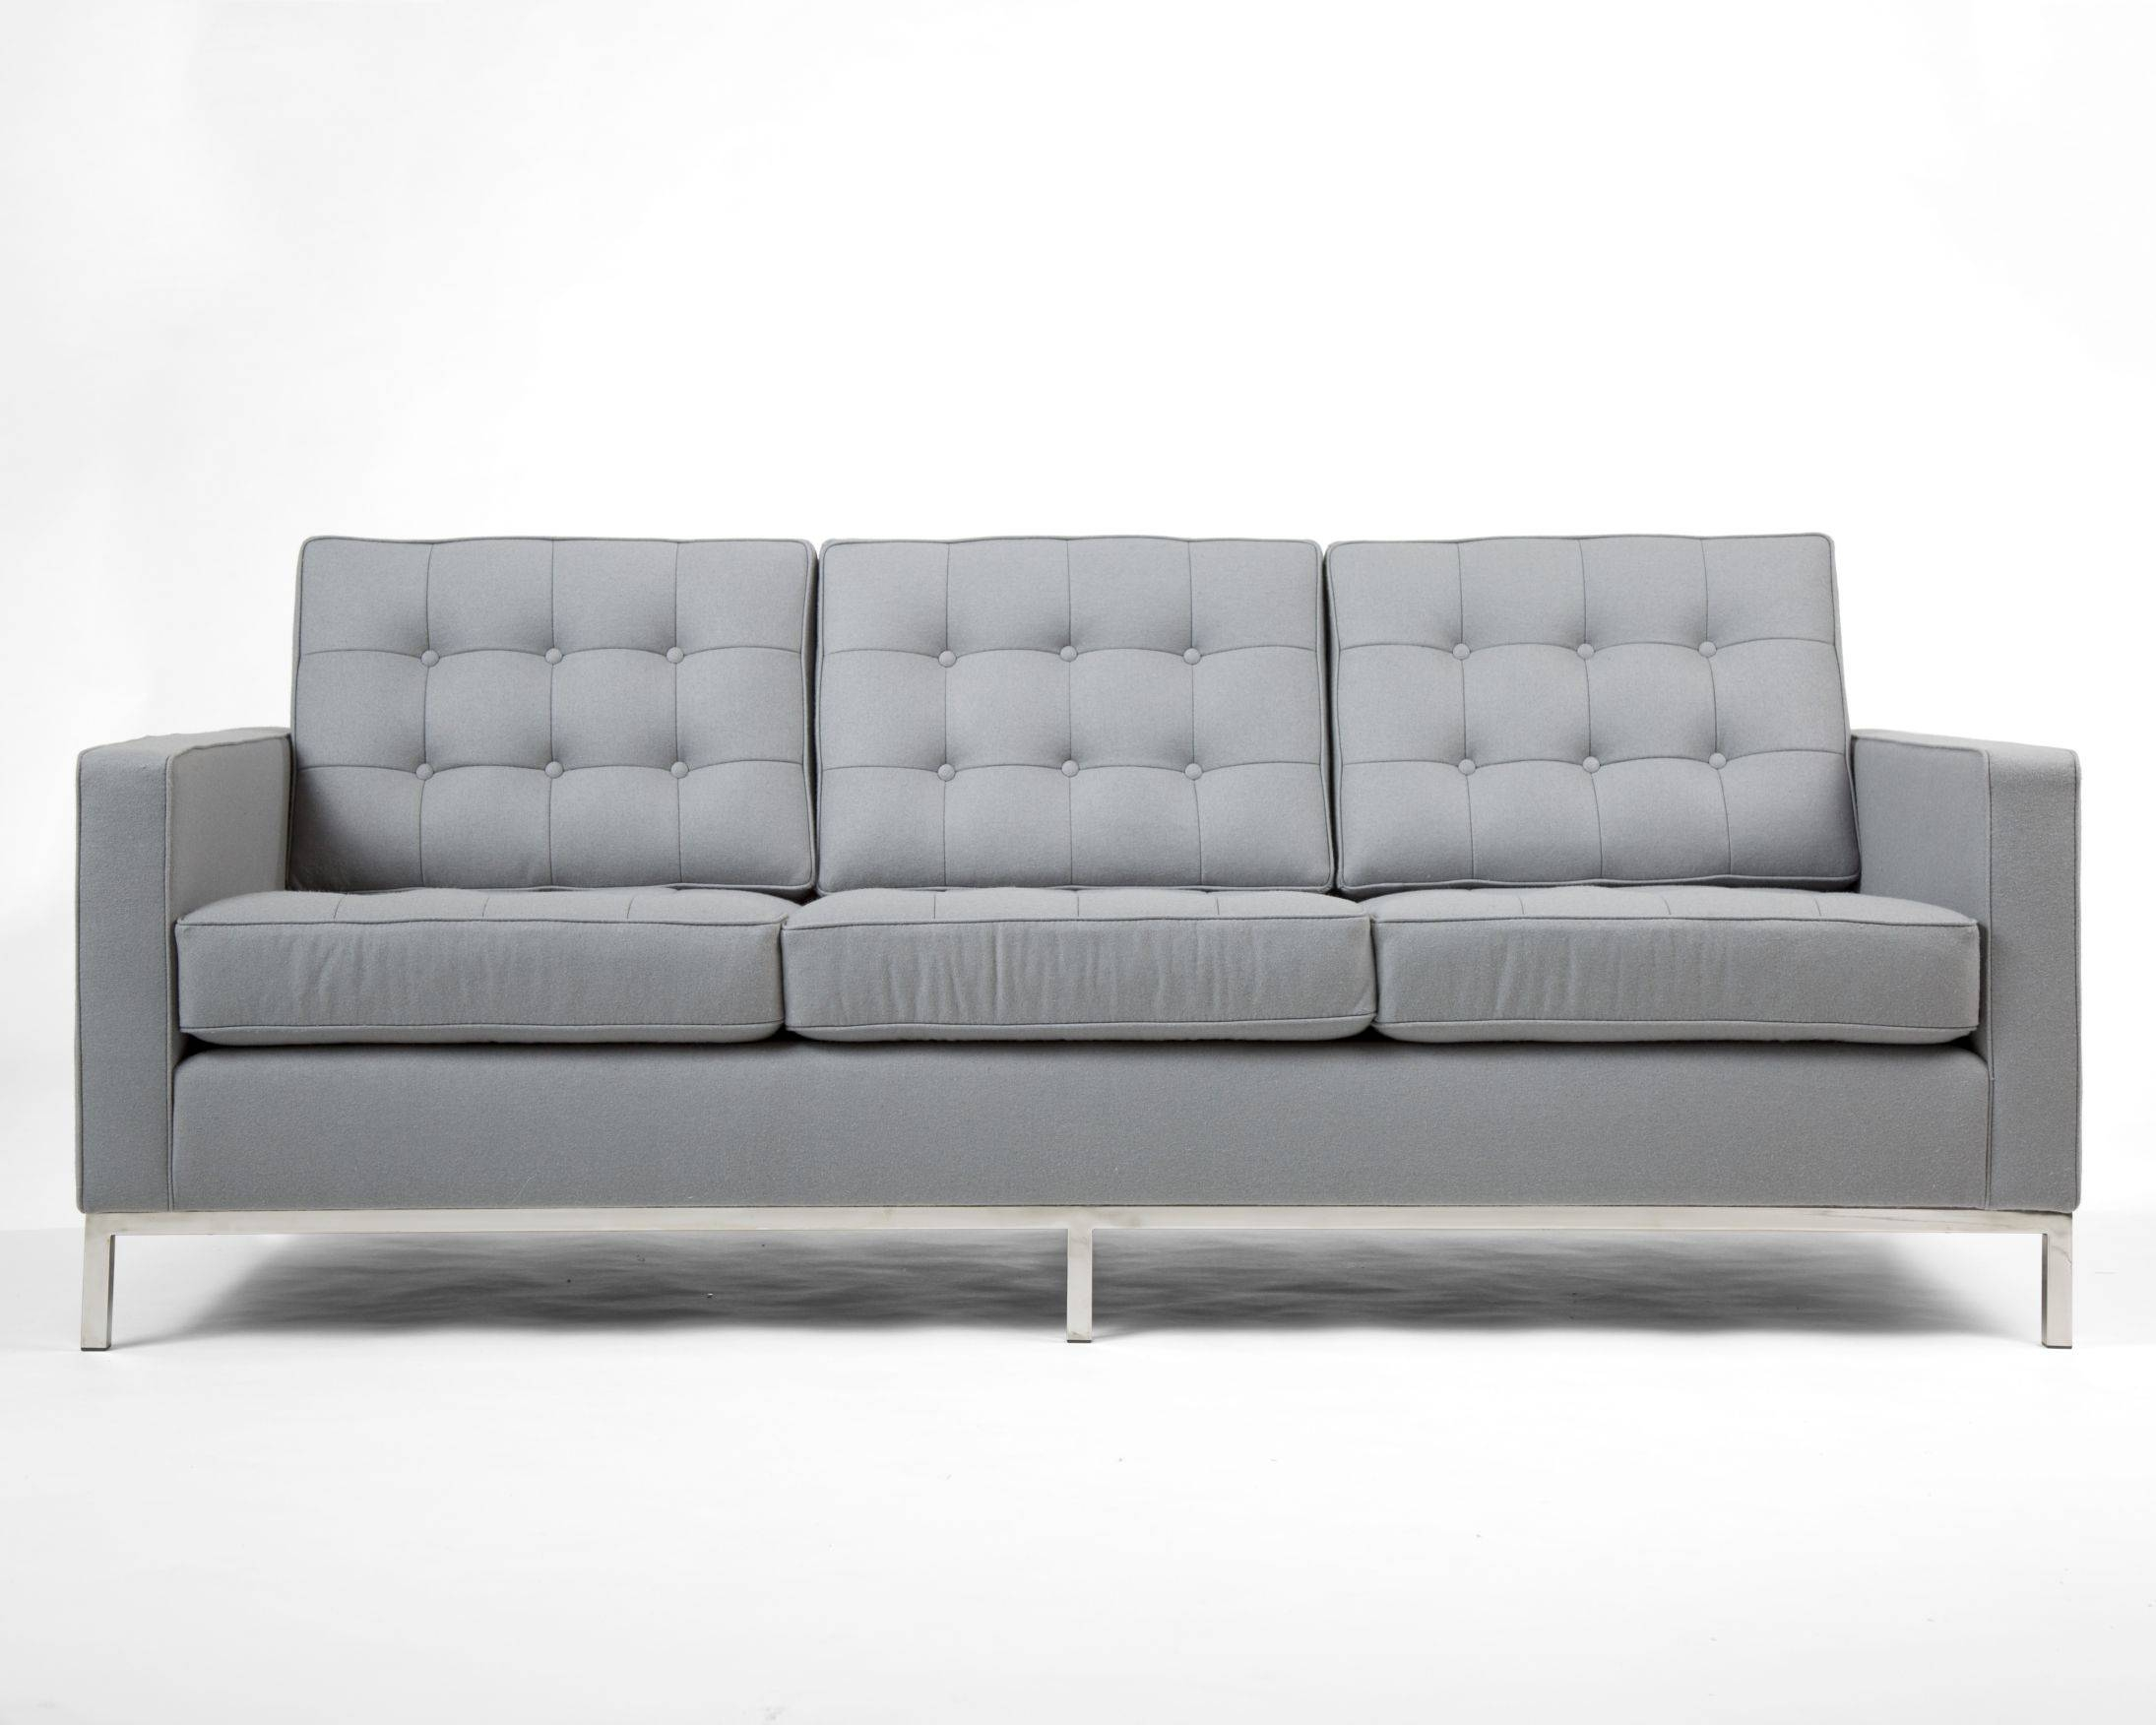 Florence Sofa | Reproduction | Mid Century Modern pertaining to Florence Sofas (Image 18 of 30)